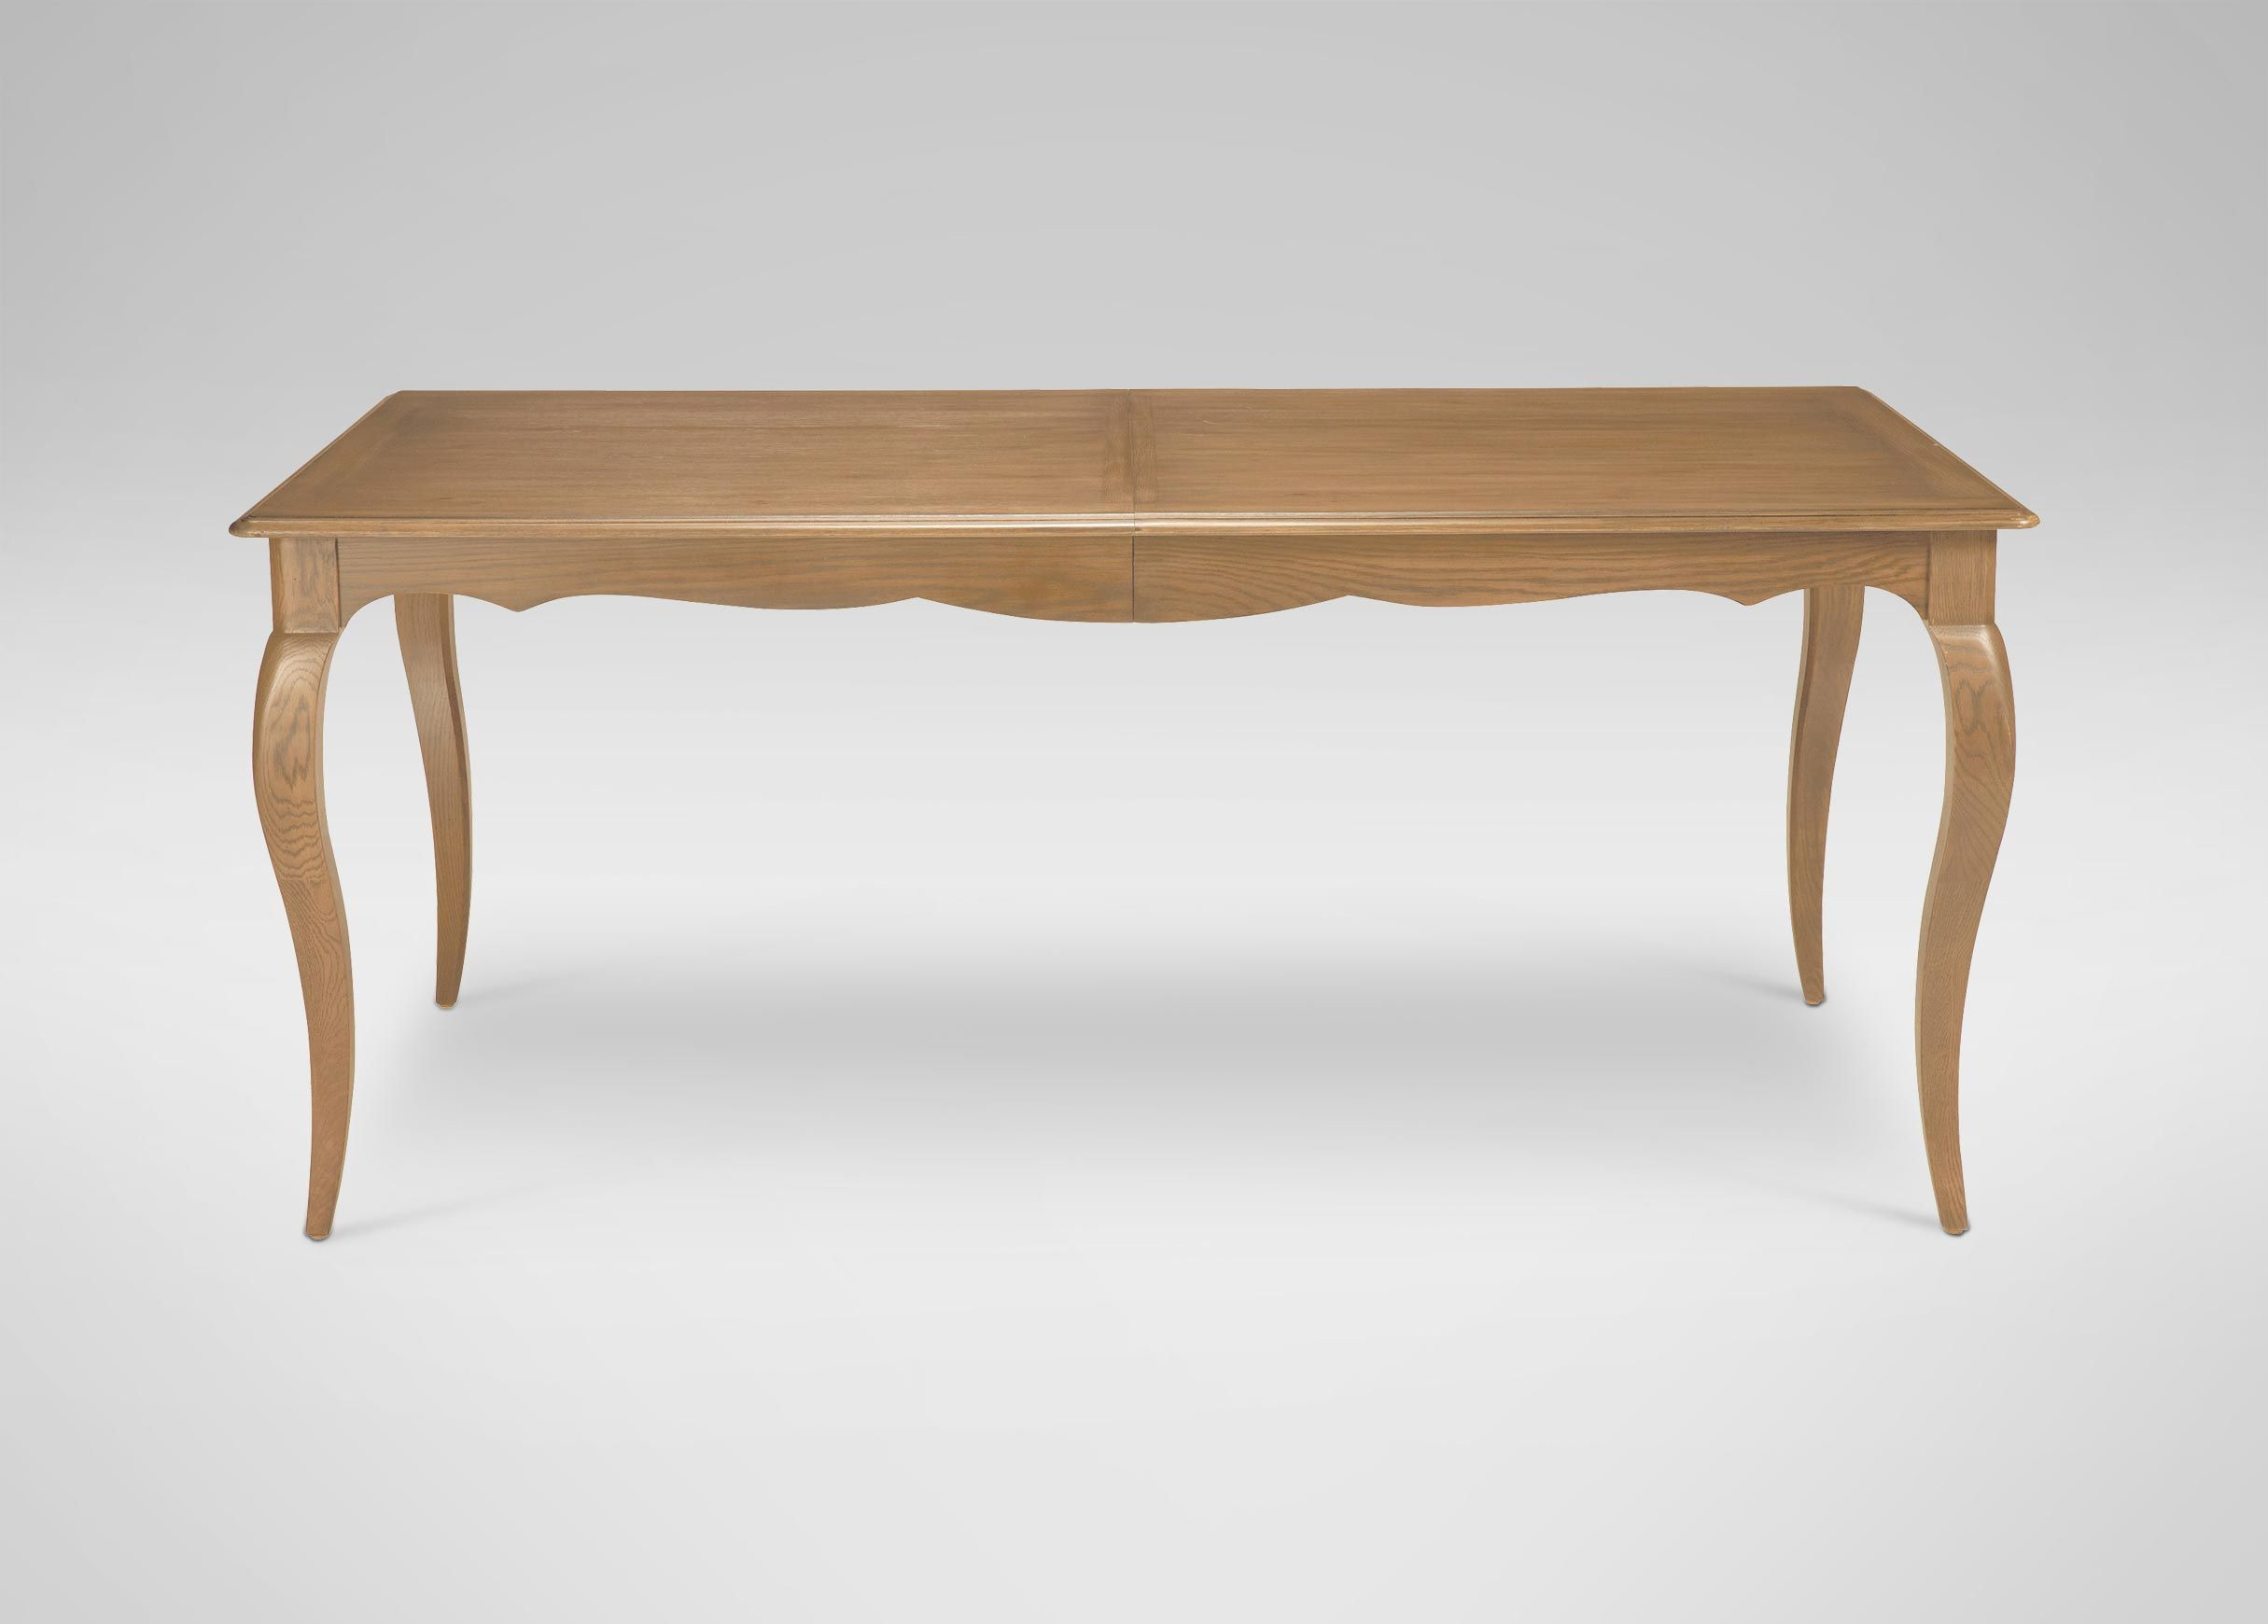 Bijou Dining Table | Dining Tables | Comedores Vintage In Most Popular Brussels Reclaimed European Barnwood Dining Tables (View 8 of 25)